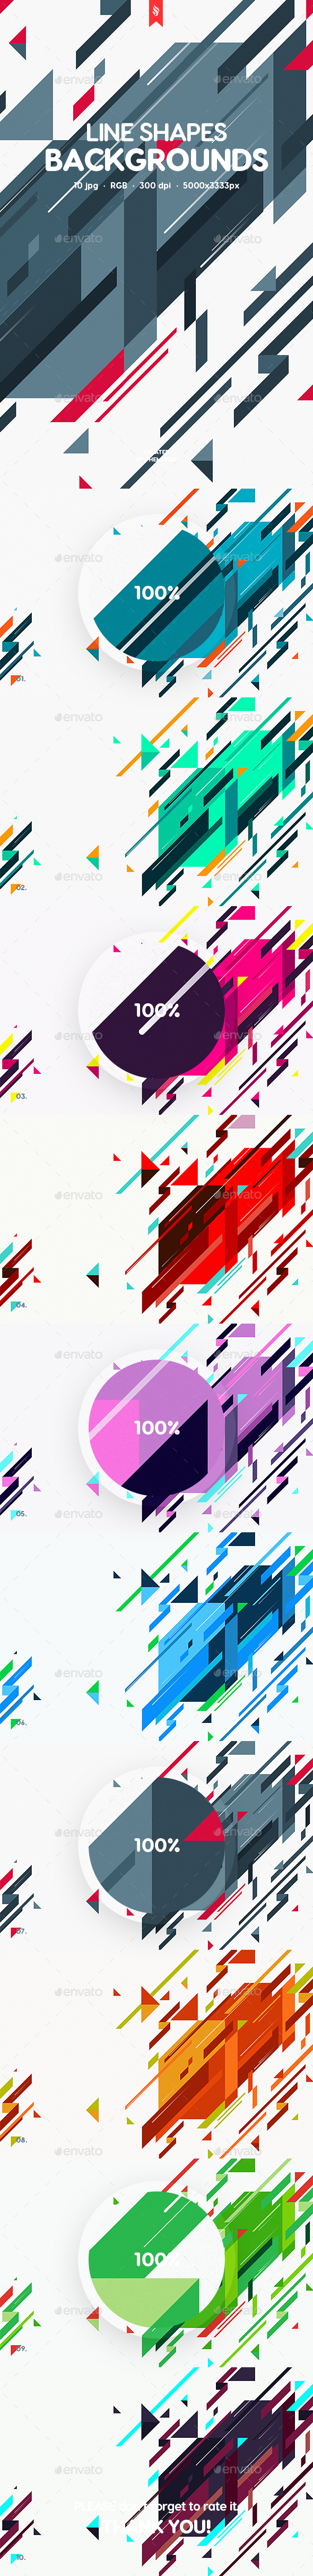 Abstract Flat Line Shapes Backgrounds - Patterns Backgrounds